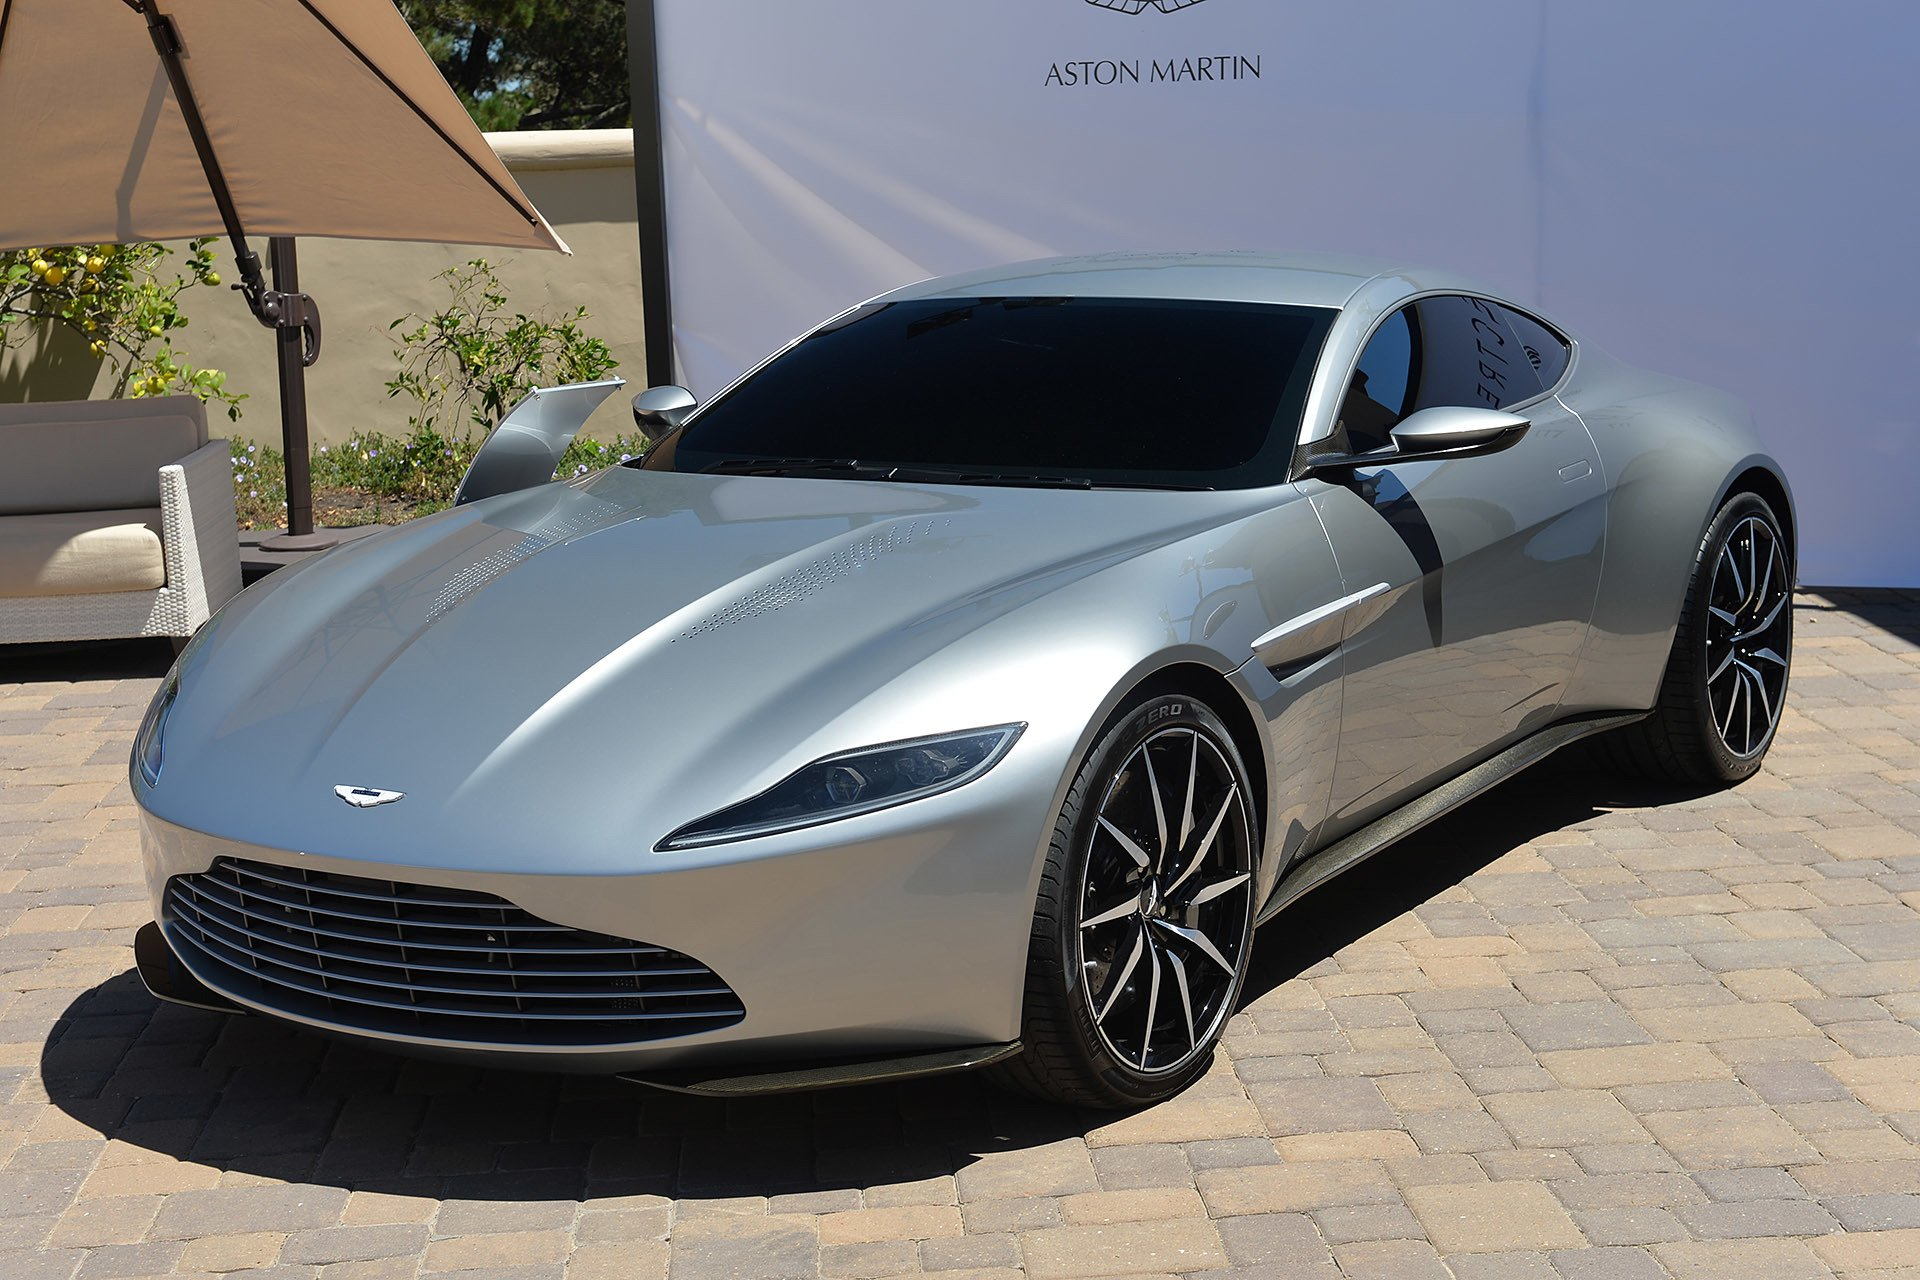 2017 Aston Martin DB10 photo - 4